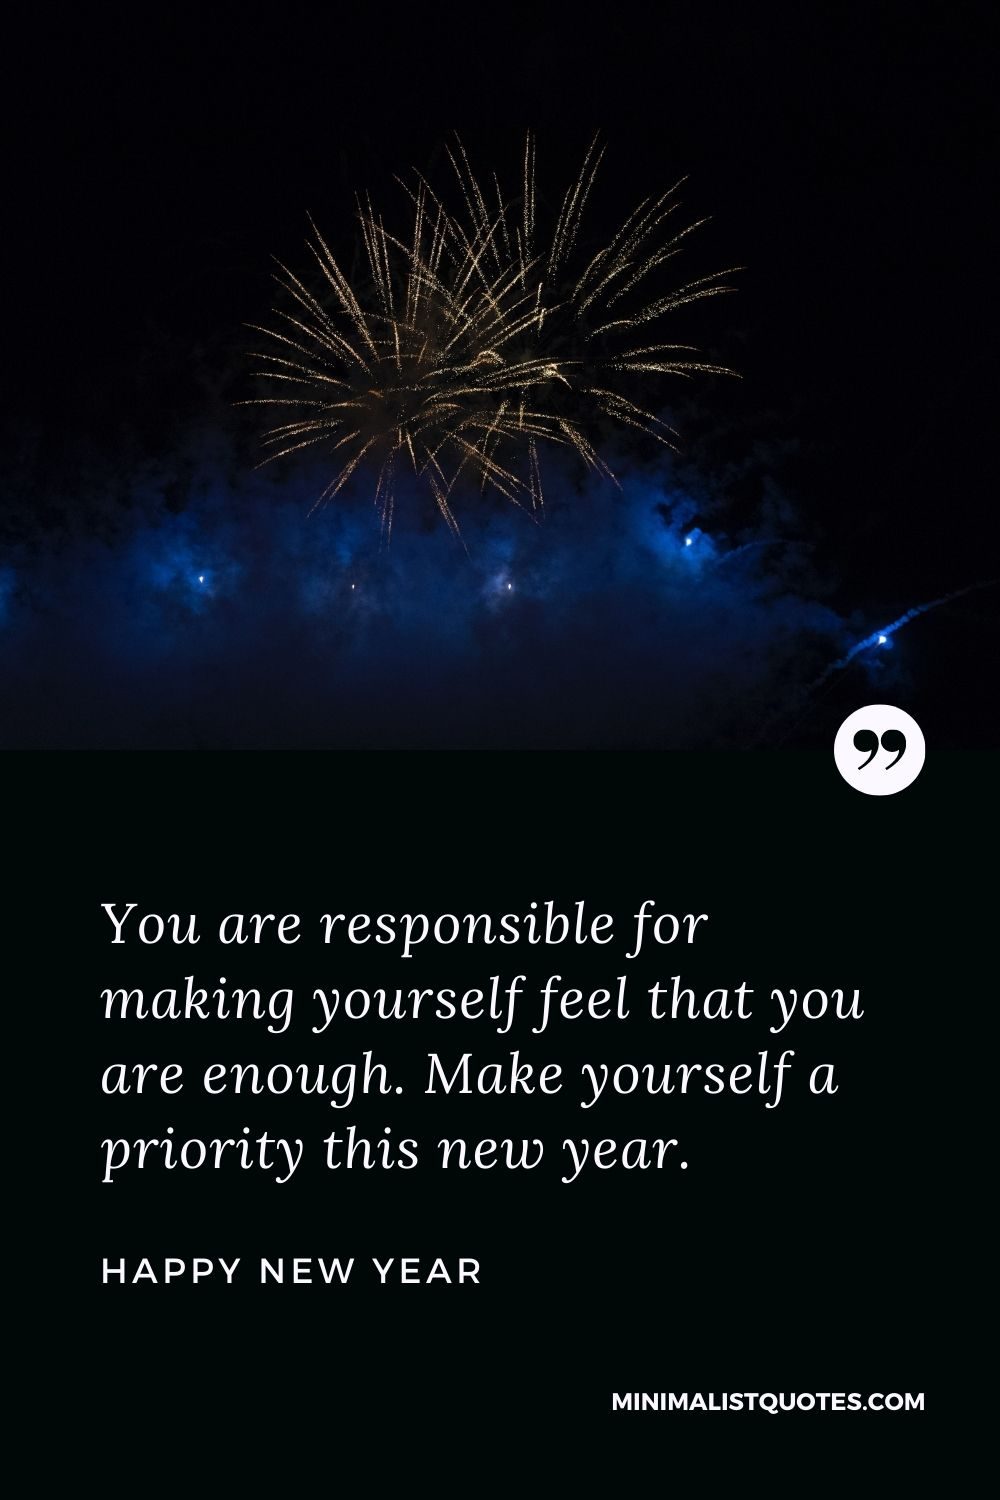 New Year Wish - You are responsible for making yourself feel that you are enough. Make yourself a priority this new year.